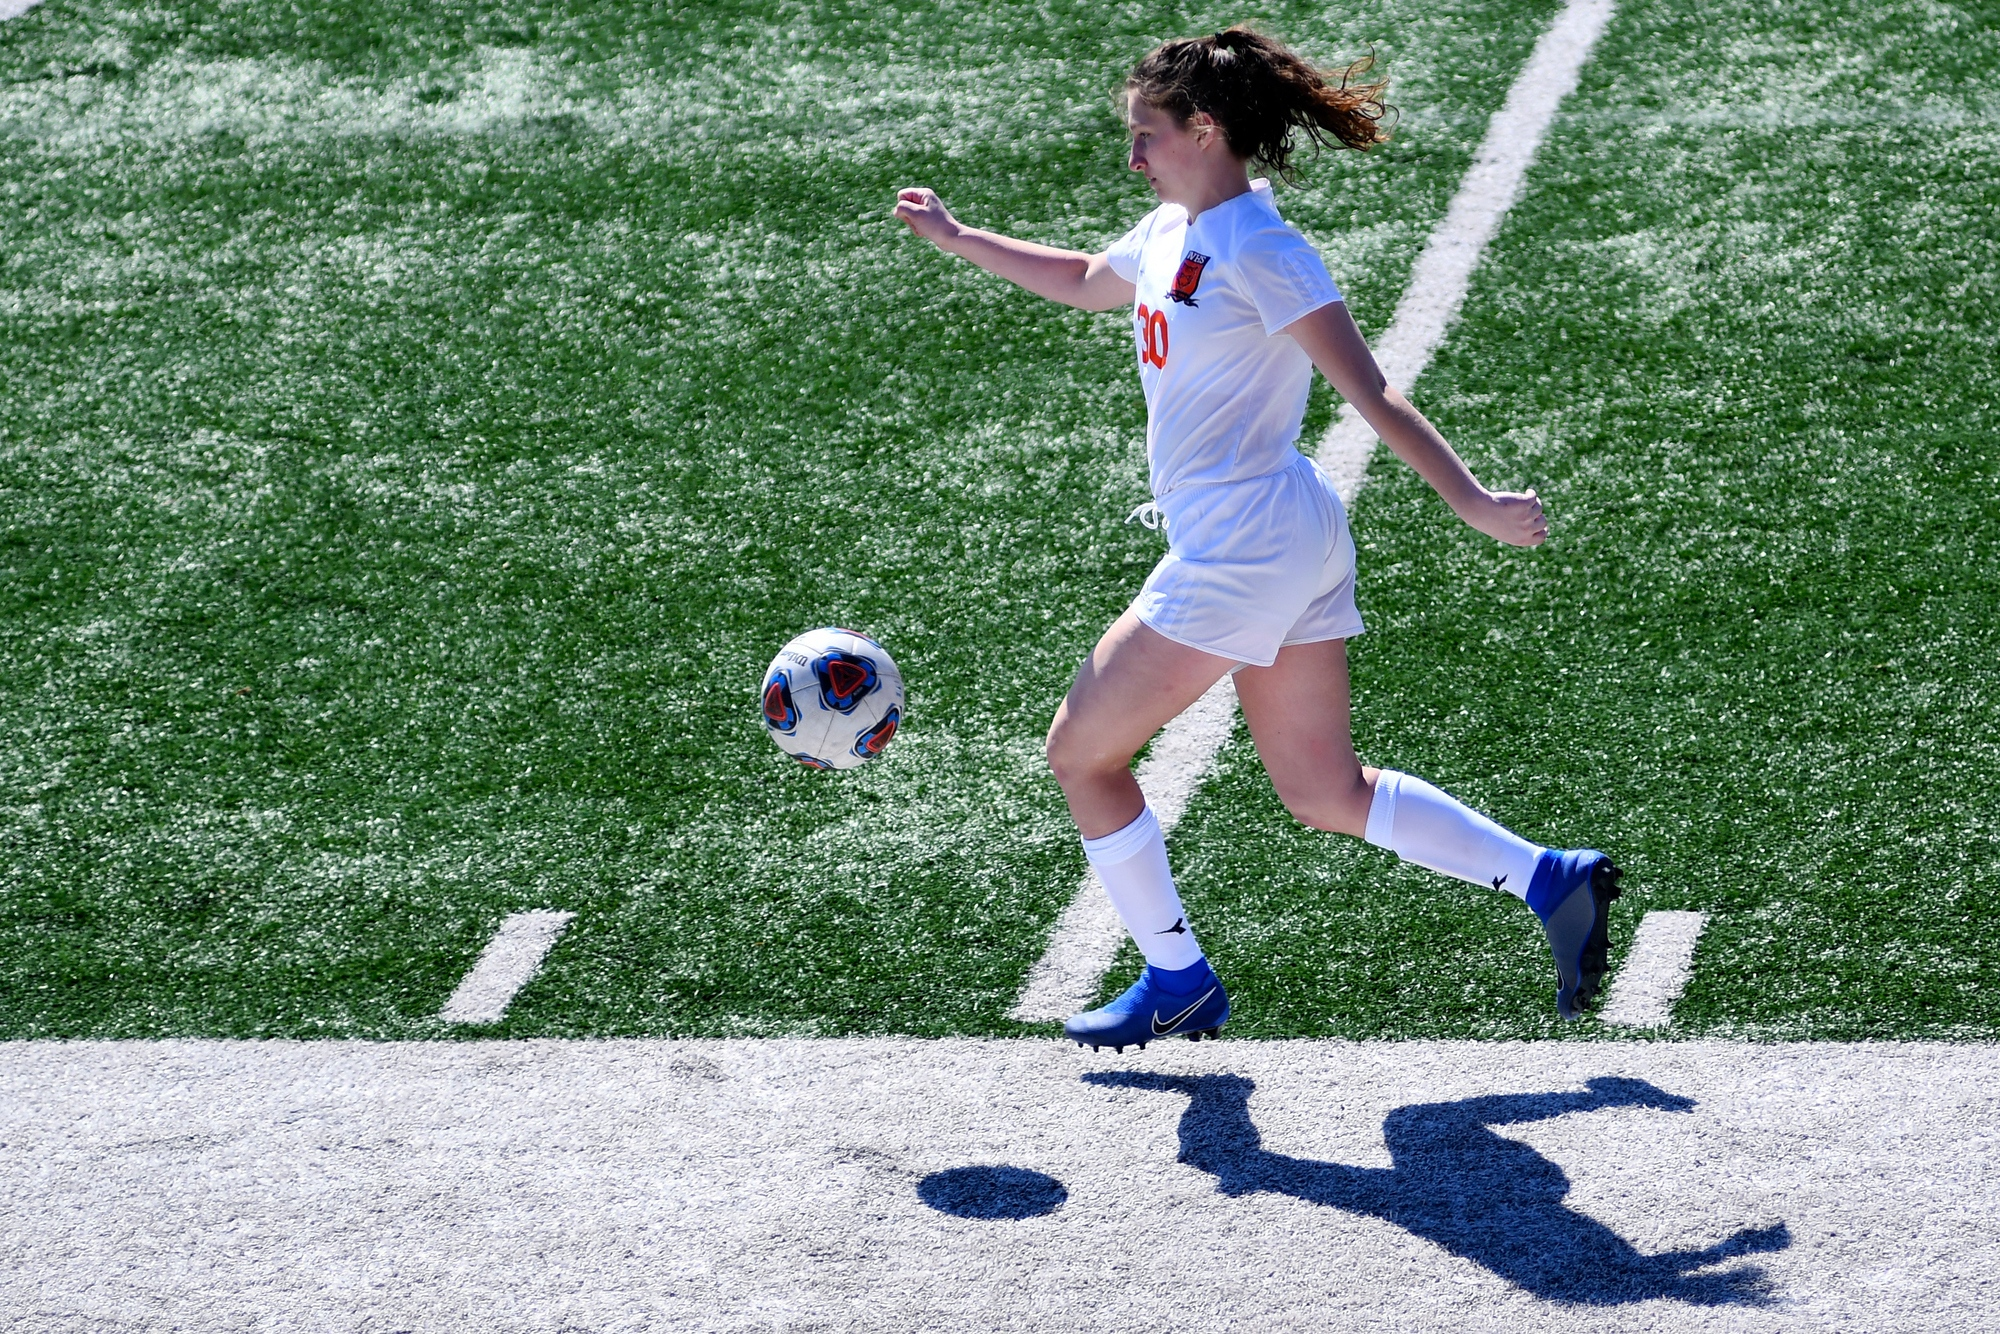 Waynesville midfielder Jessica Dwyer dribbles the ball up the field during the game against Hickman on Saturday, March 16, 2019 at Hickman High School. The Tigers' next game will be at Helias Catholic High School in Jefferson City.